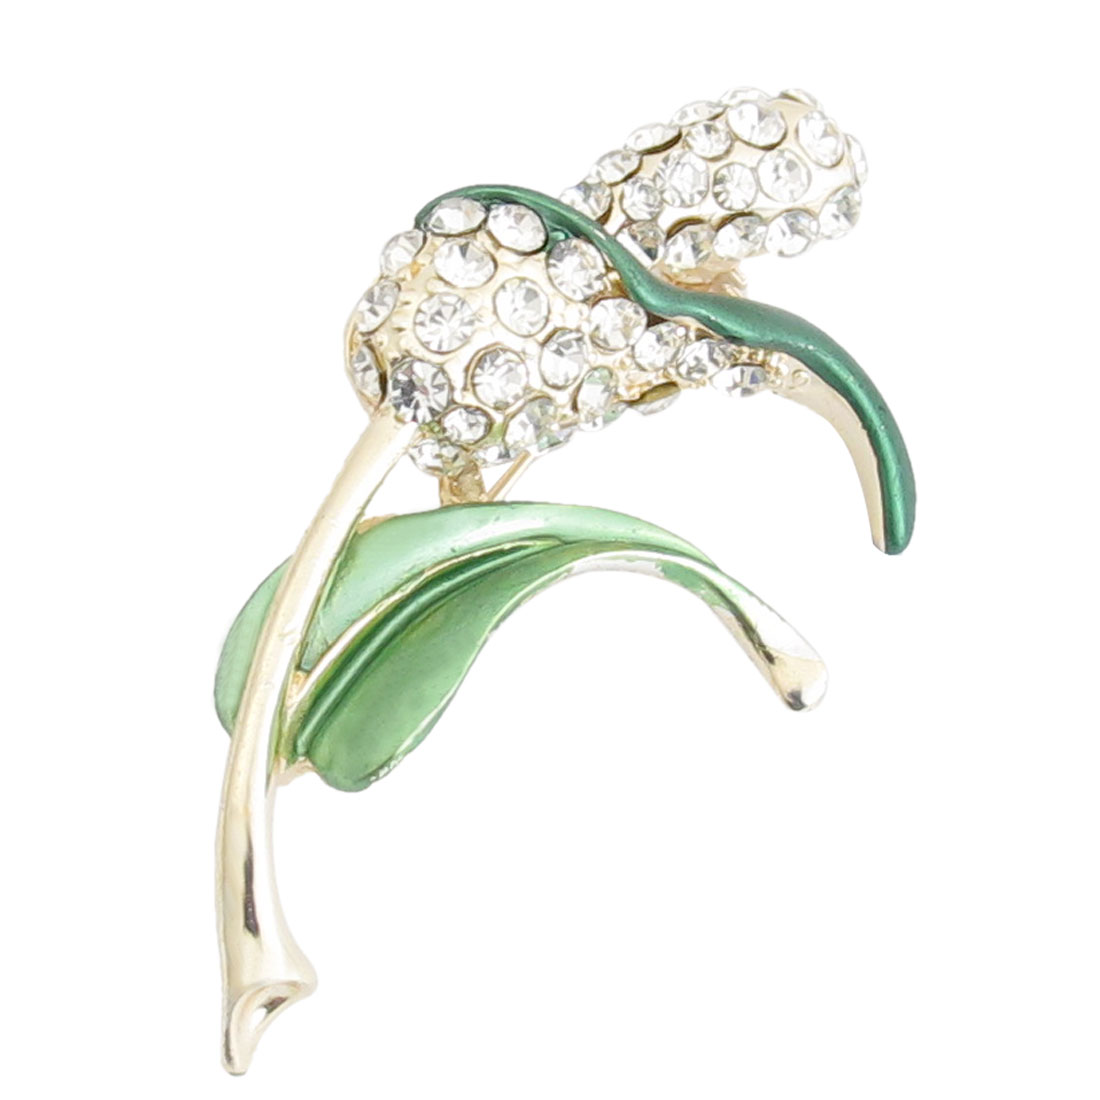 Bridal Decoration Green Leaf Rhinestone Inlaid Flower Branch Brooch Pin